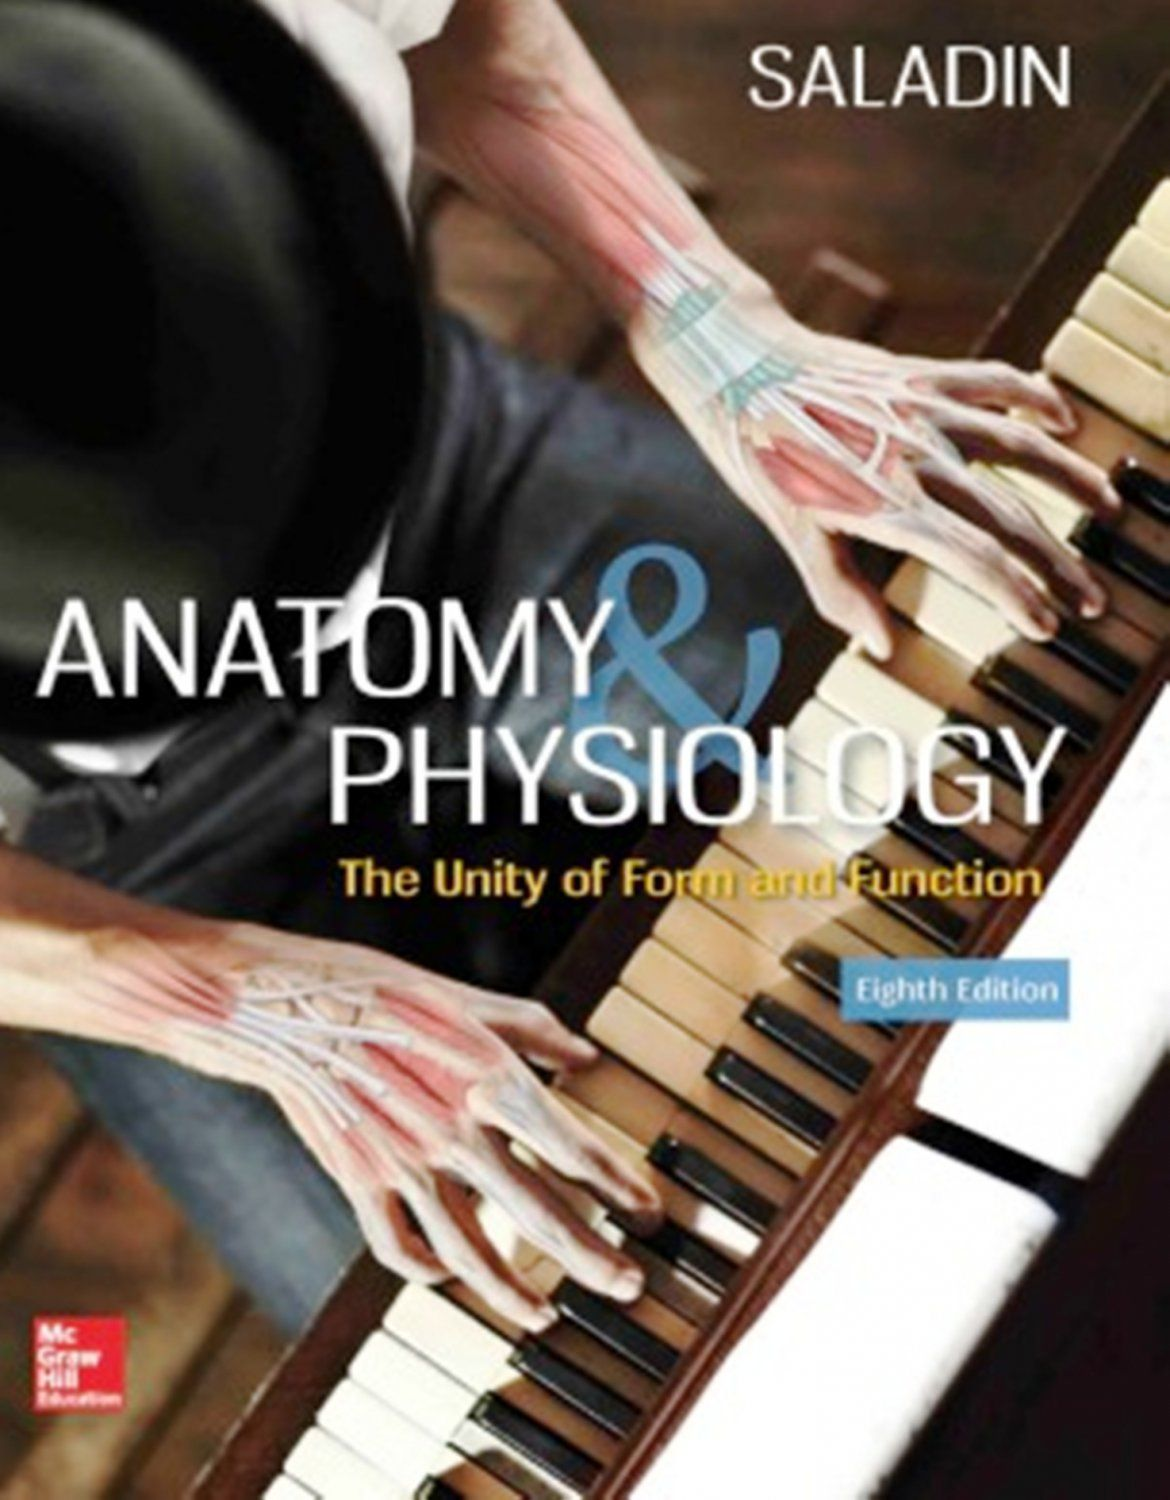 Anatomy+&+Physiology:+The+Unity+of+Form+and+Function+8th+edition+by+ ...